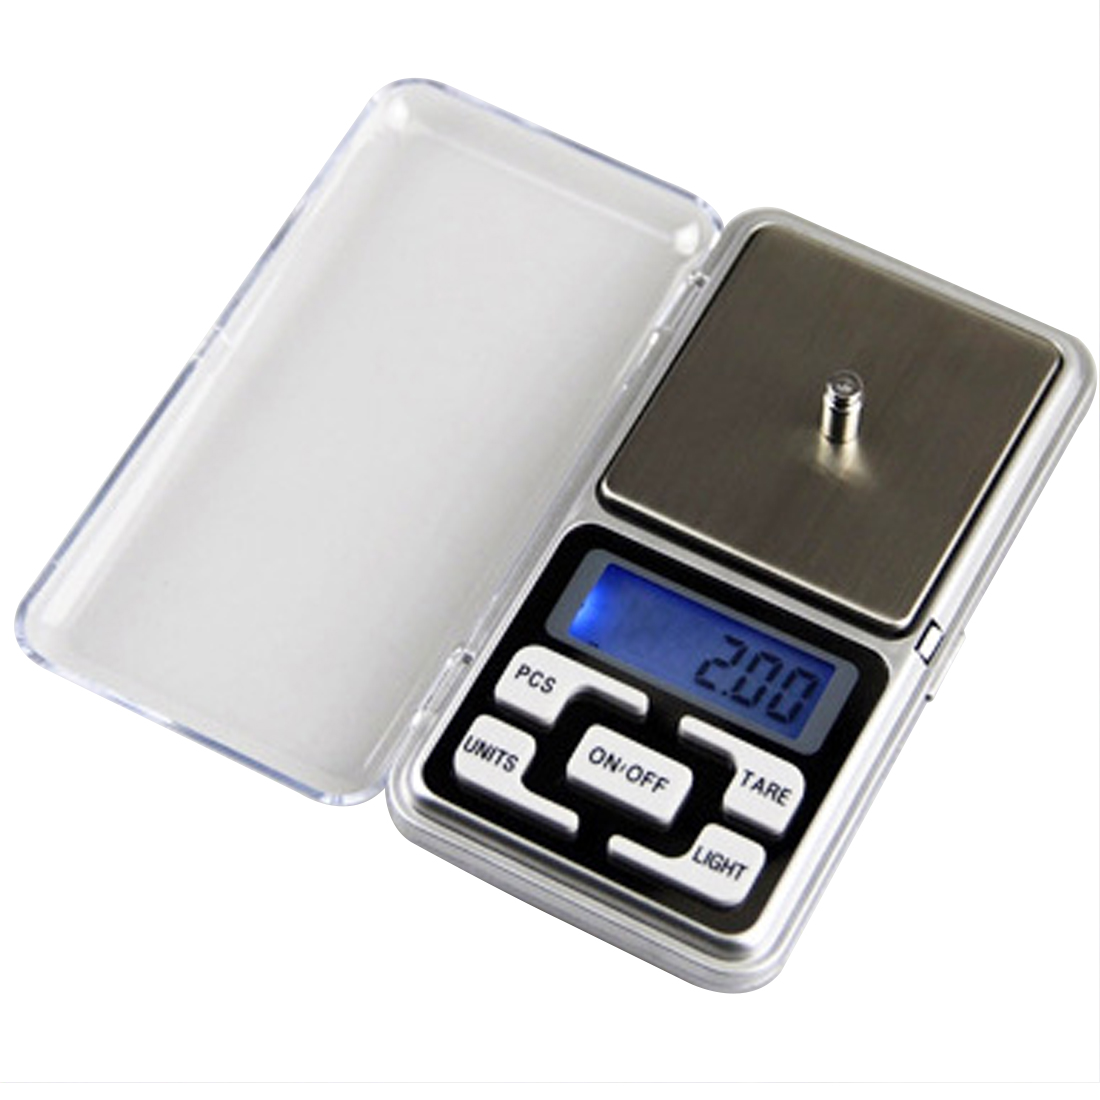 Mini Precision Digital Scales 200g/0.01g For Gold Bijoux Sterling Silver Scale Jewelry 0.01 Weight Electronic Scales цена